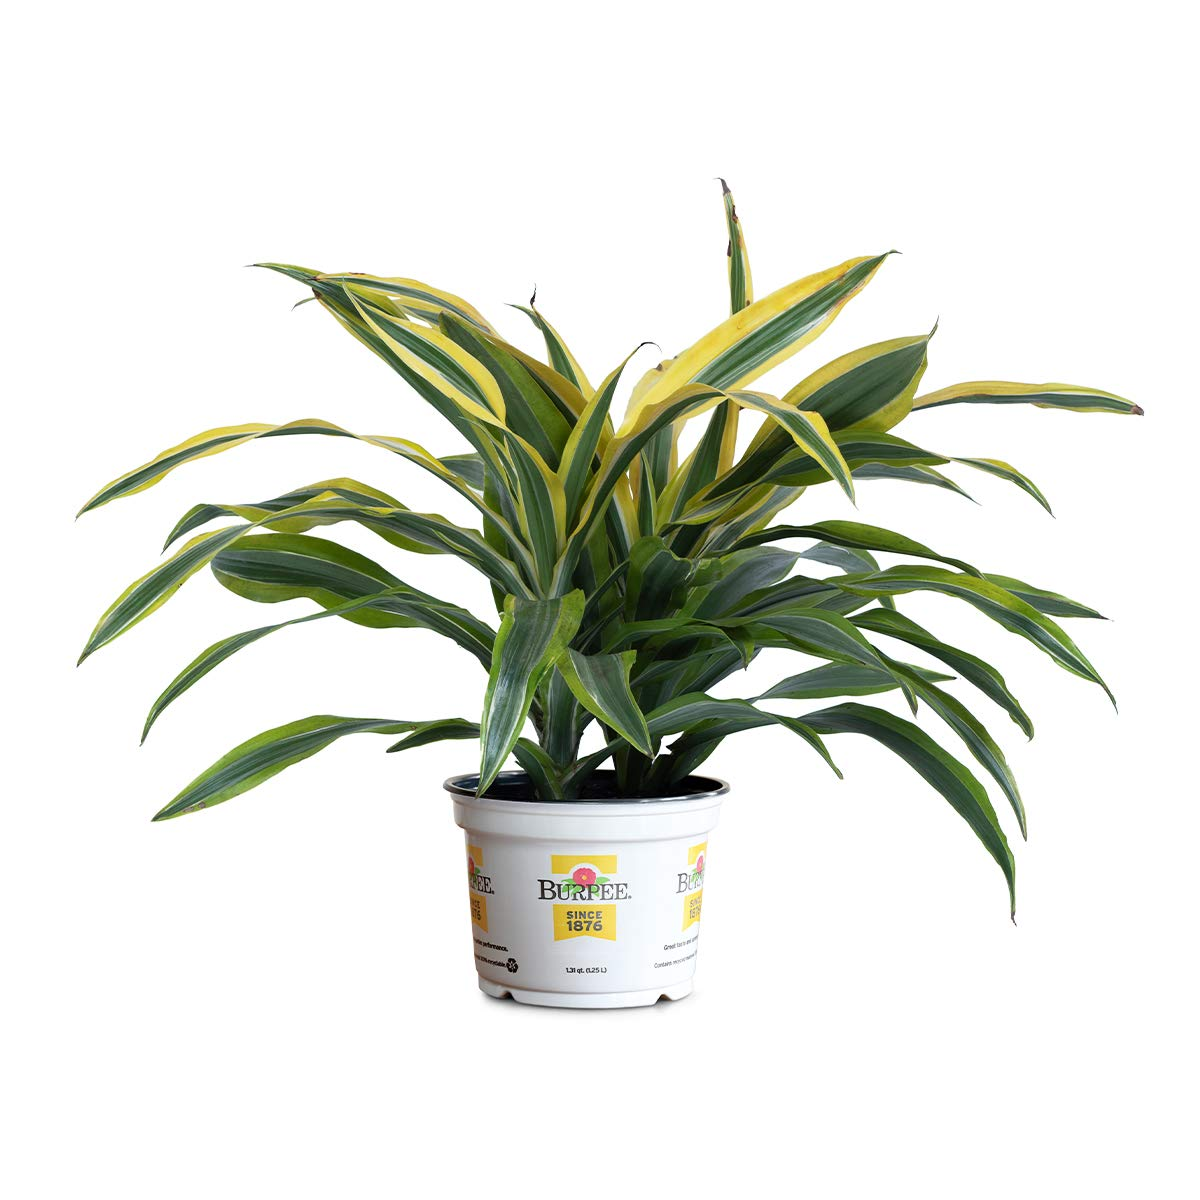 Burpee Dracaena Lemon Lime | Bright Indirect Light | Live Easy Care Houseplant, 6'' Pot